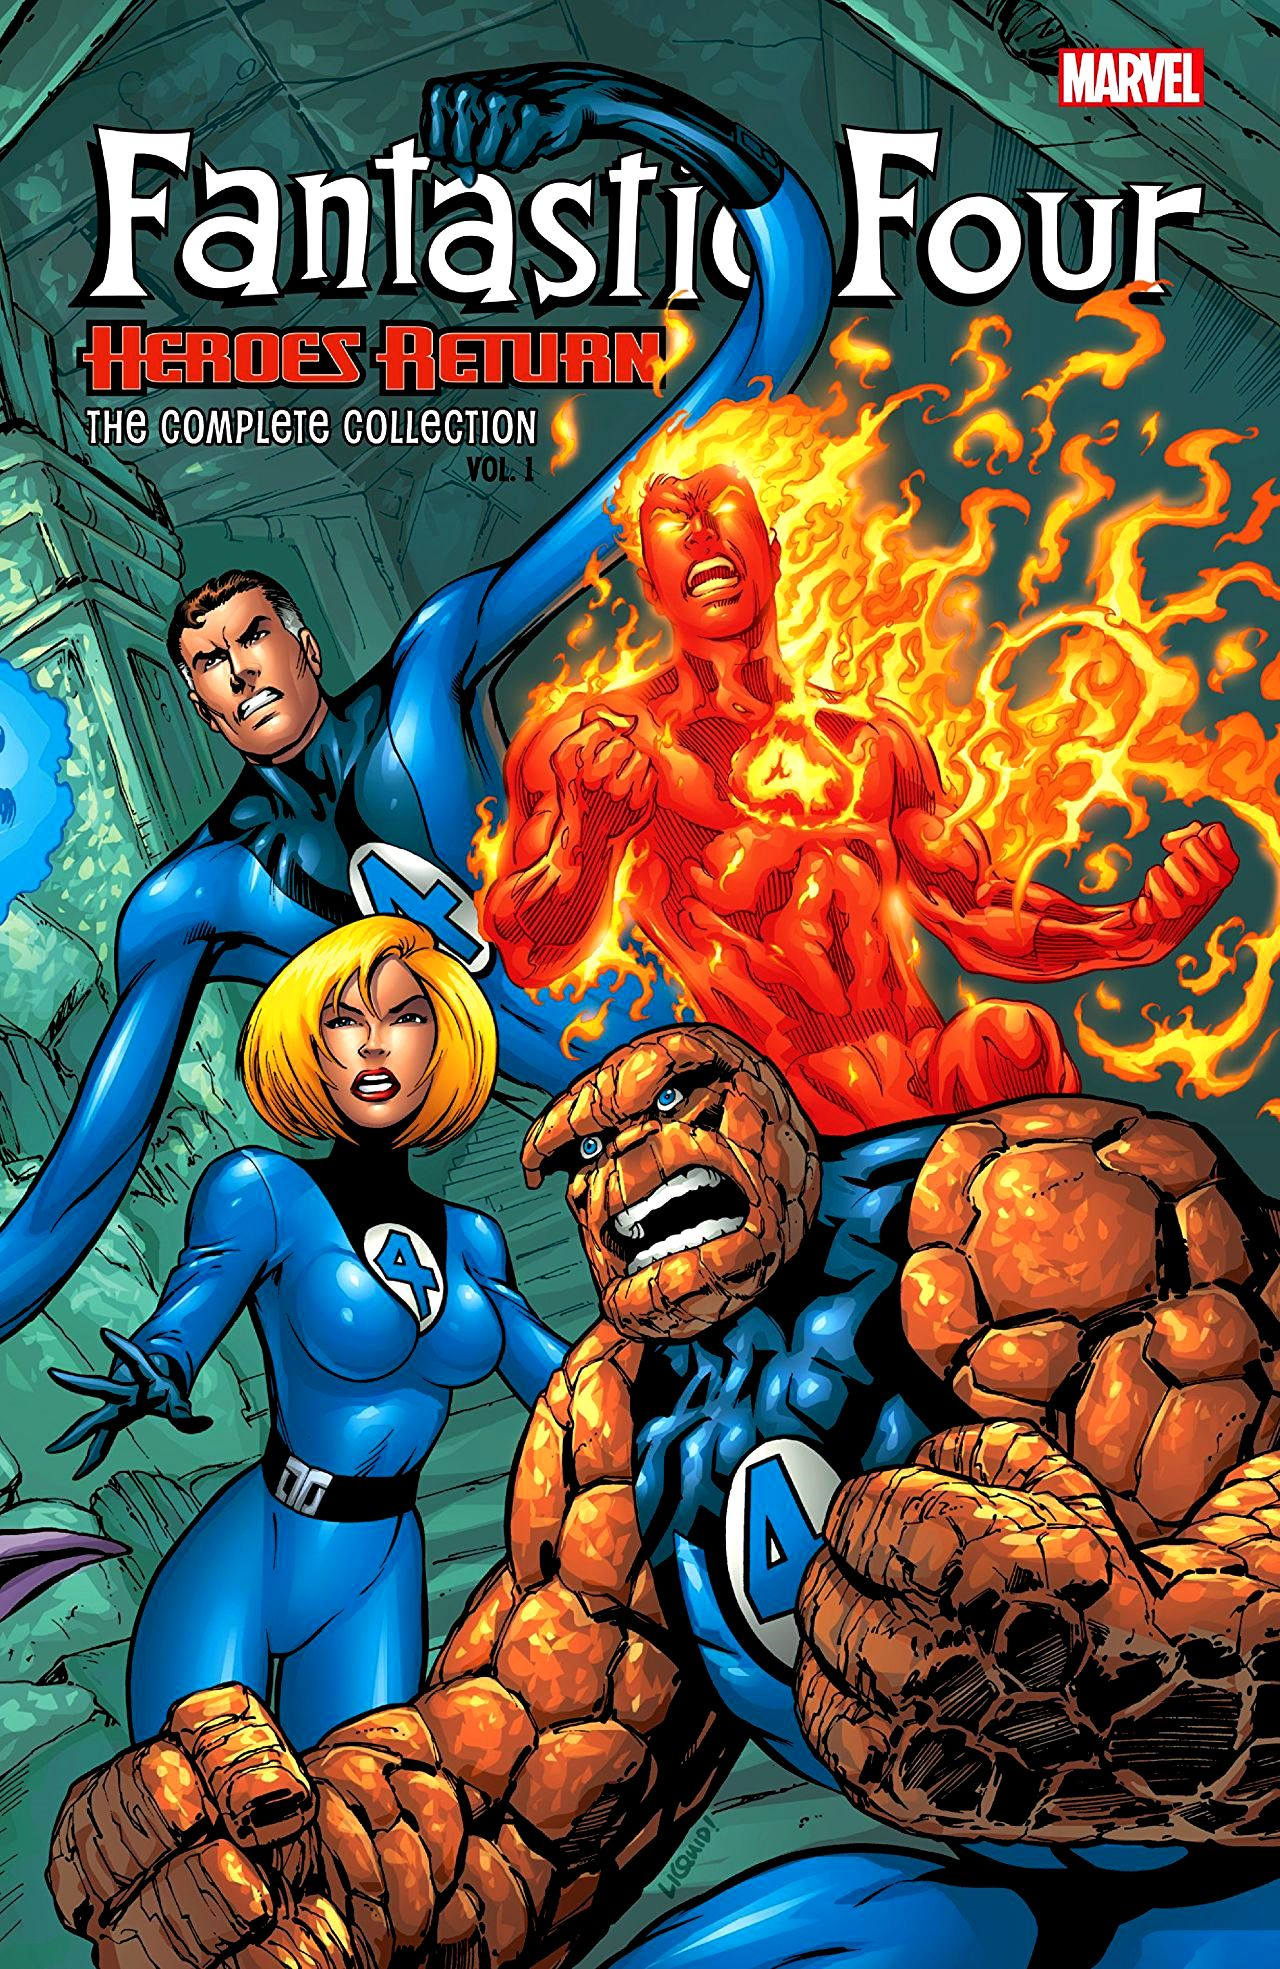 Fantastic Four: Heroes Return - The Complete Collection Volume 1